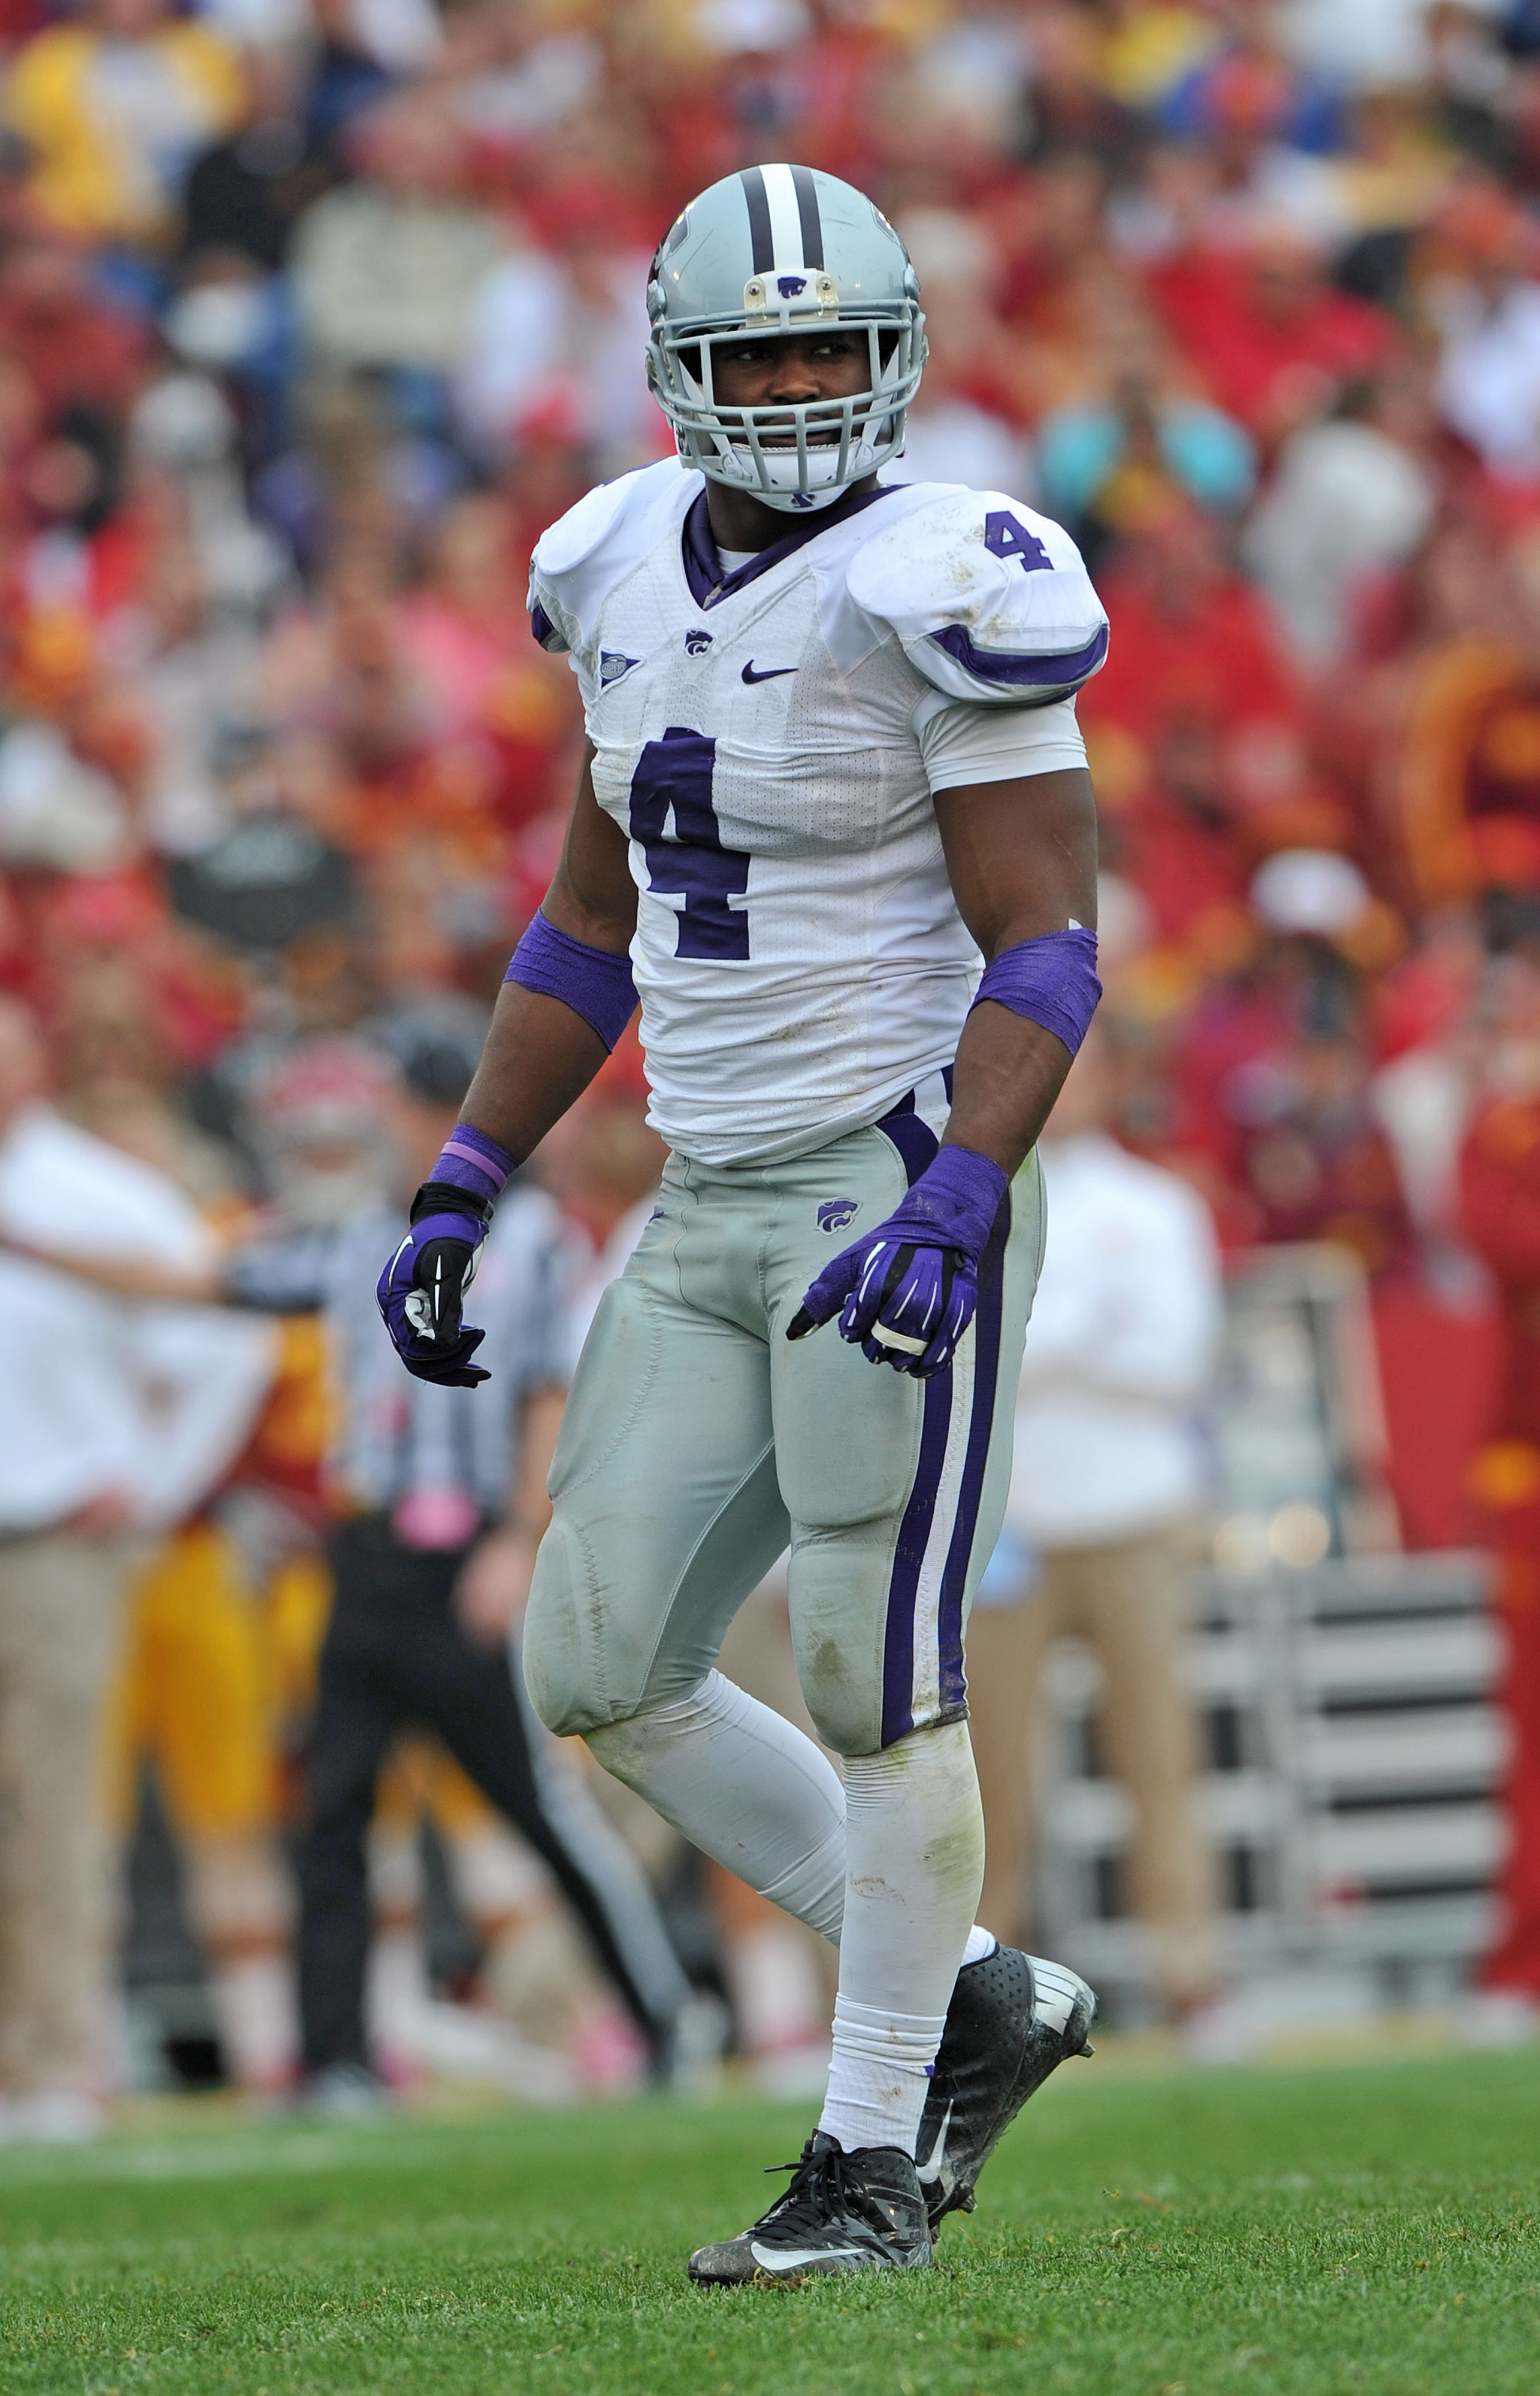 I really don't want to overhype him due to his late arrival, but D'Vonta Derricott truly has the potential to be the next Arthur Brown.